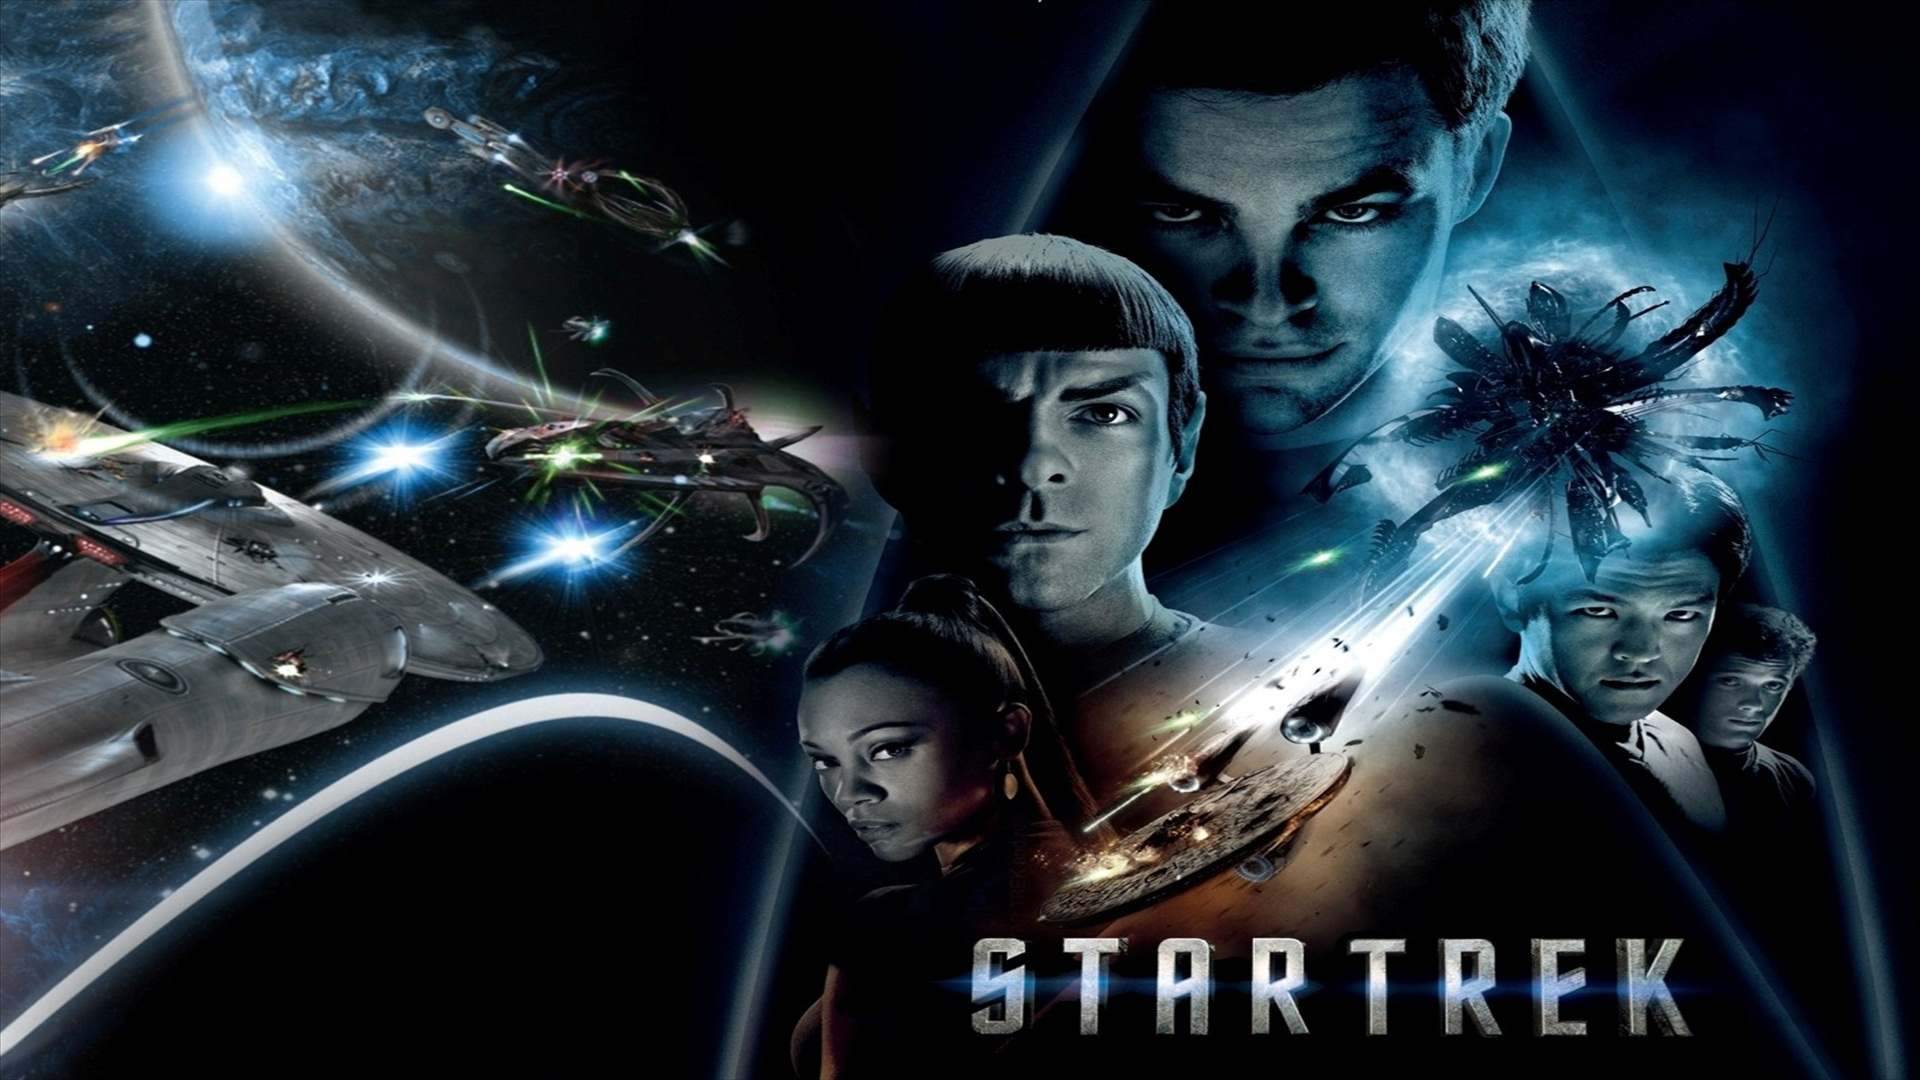 Star Trek 2009 Wallpapers wallpaper wallpaper hd background 1920x1080